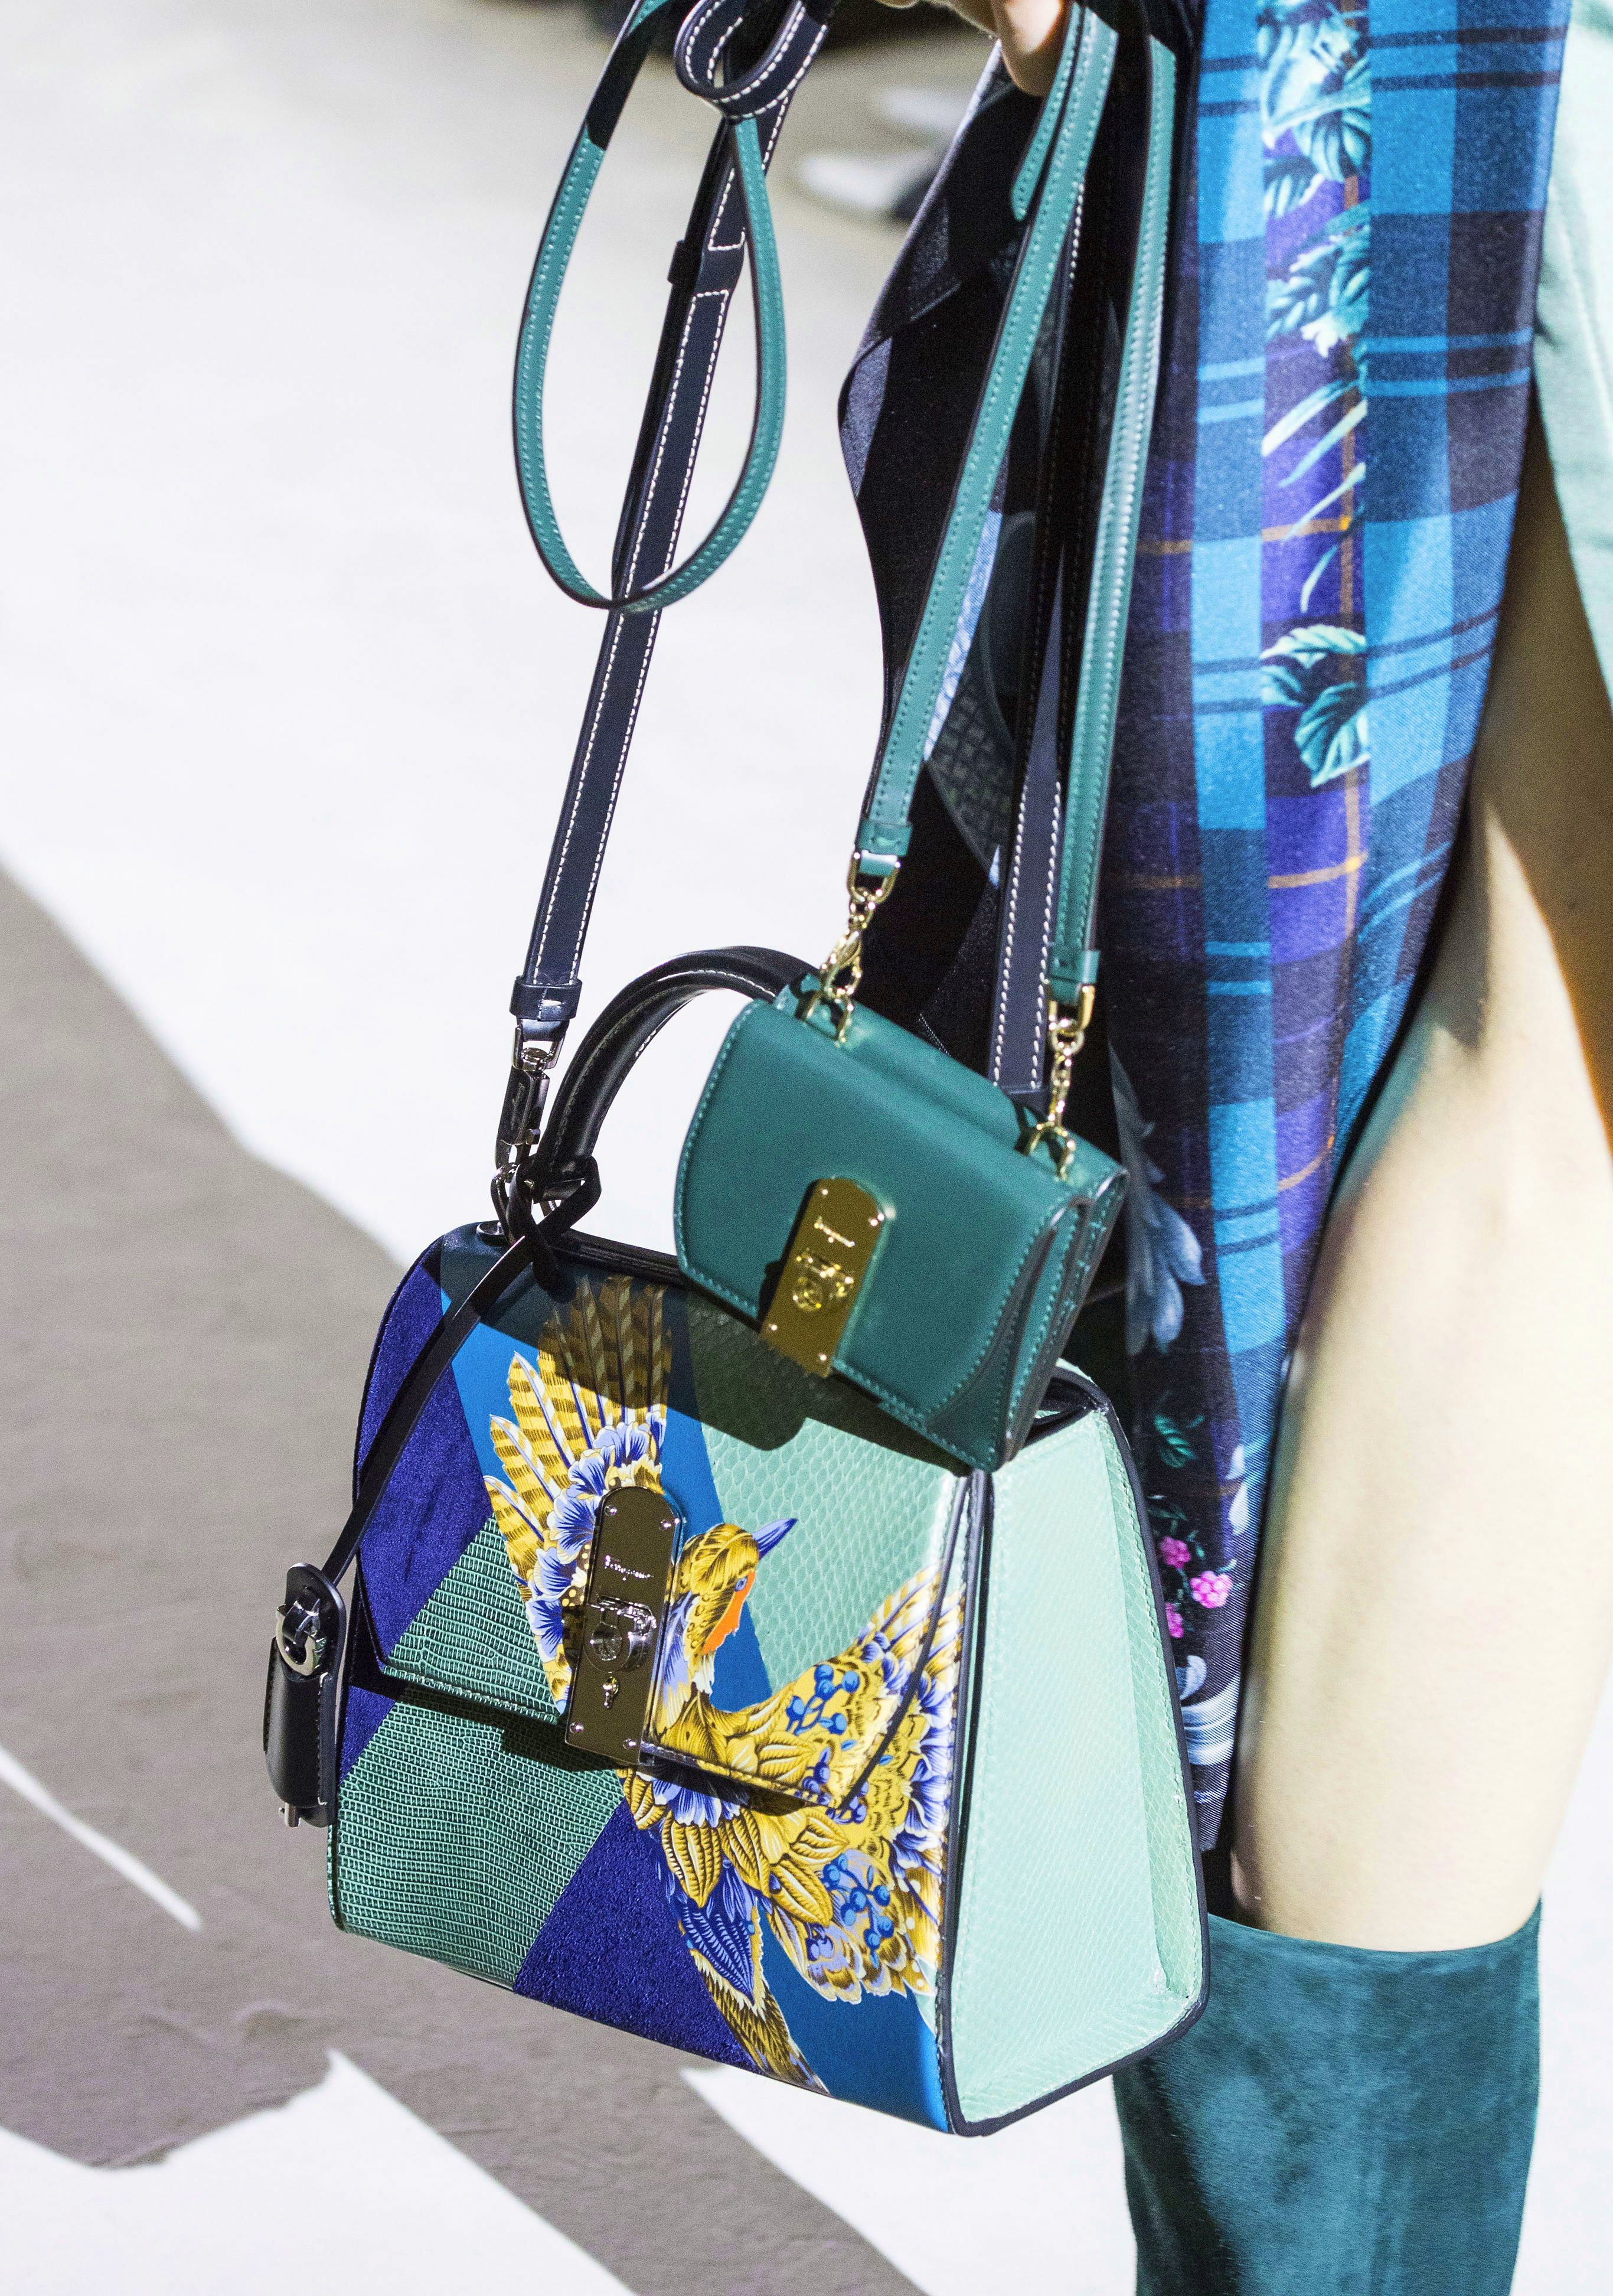 Salvatore Ferragamo boxyz printed bag from the Fall 2019 Runway Bag Collection